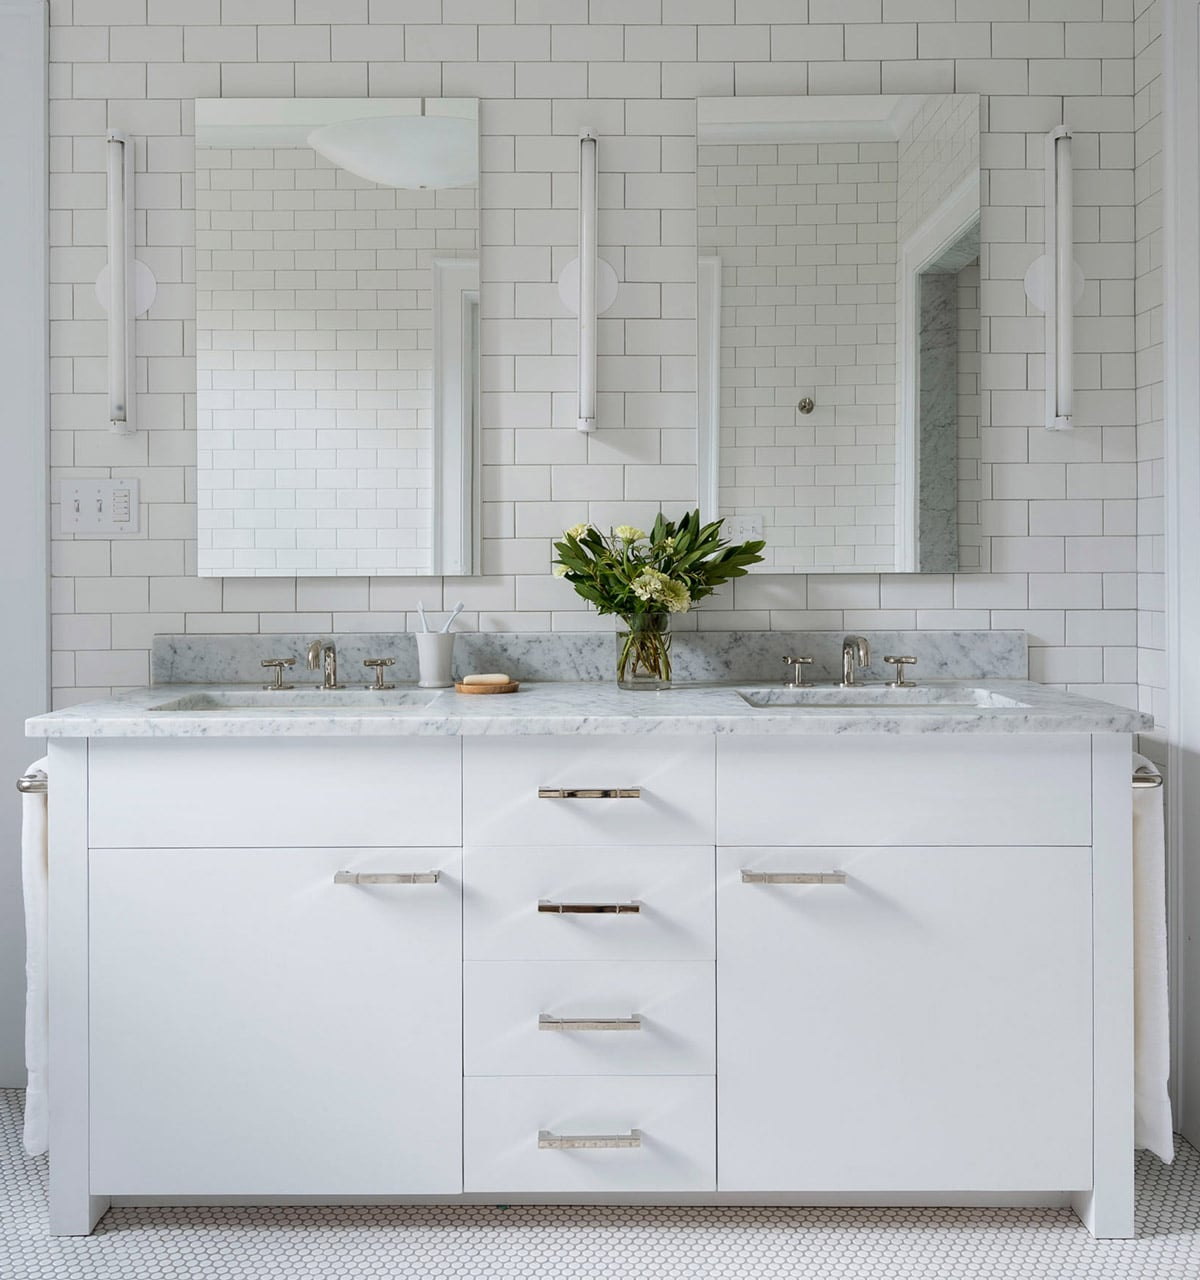 double-sink-bathroom-vanity-cabinets-Rafe-Churchill-copy